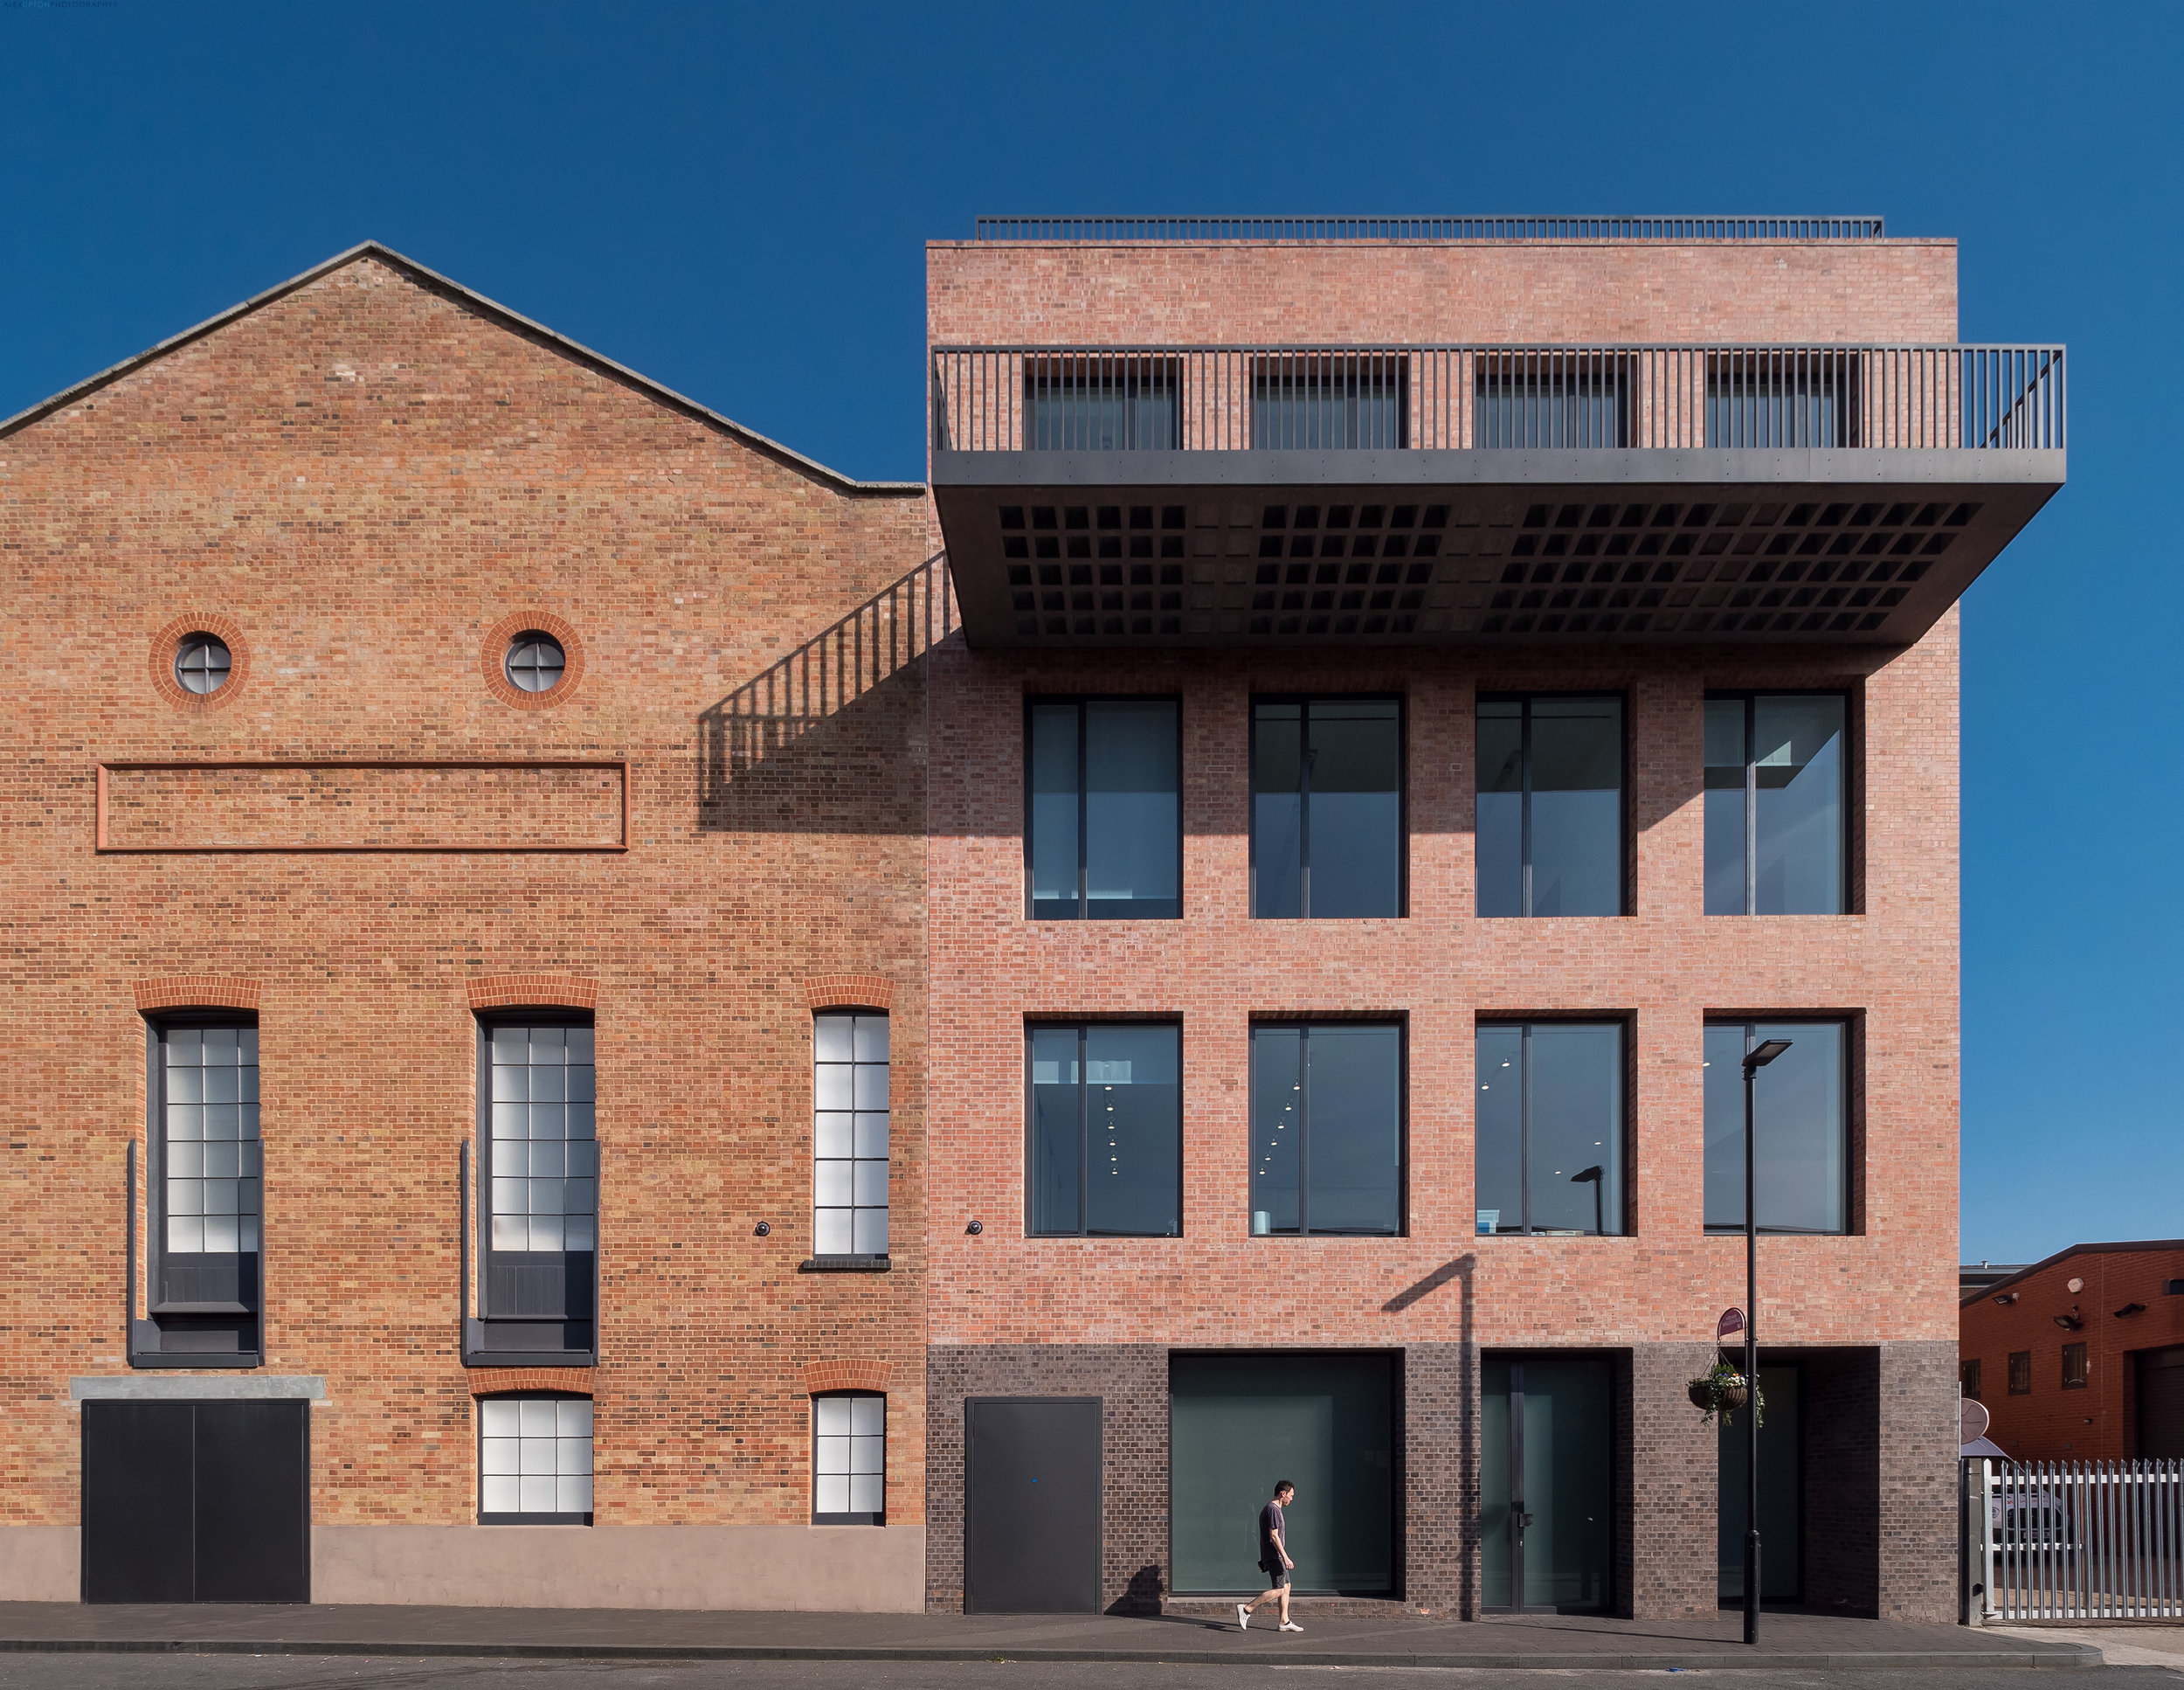 A sense of architectural scale - contrasting the former industrial warehouse with the galleries new office space.